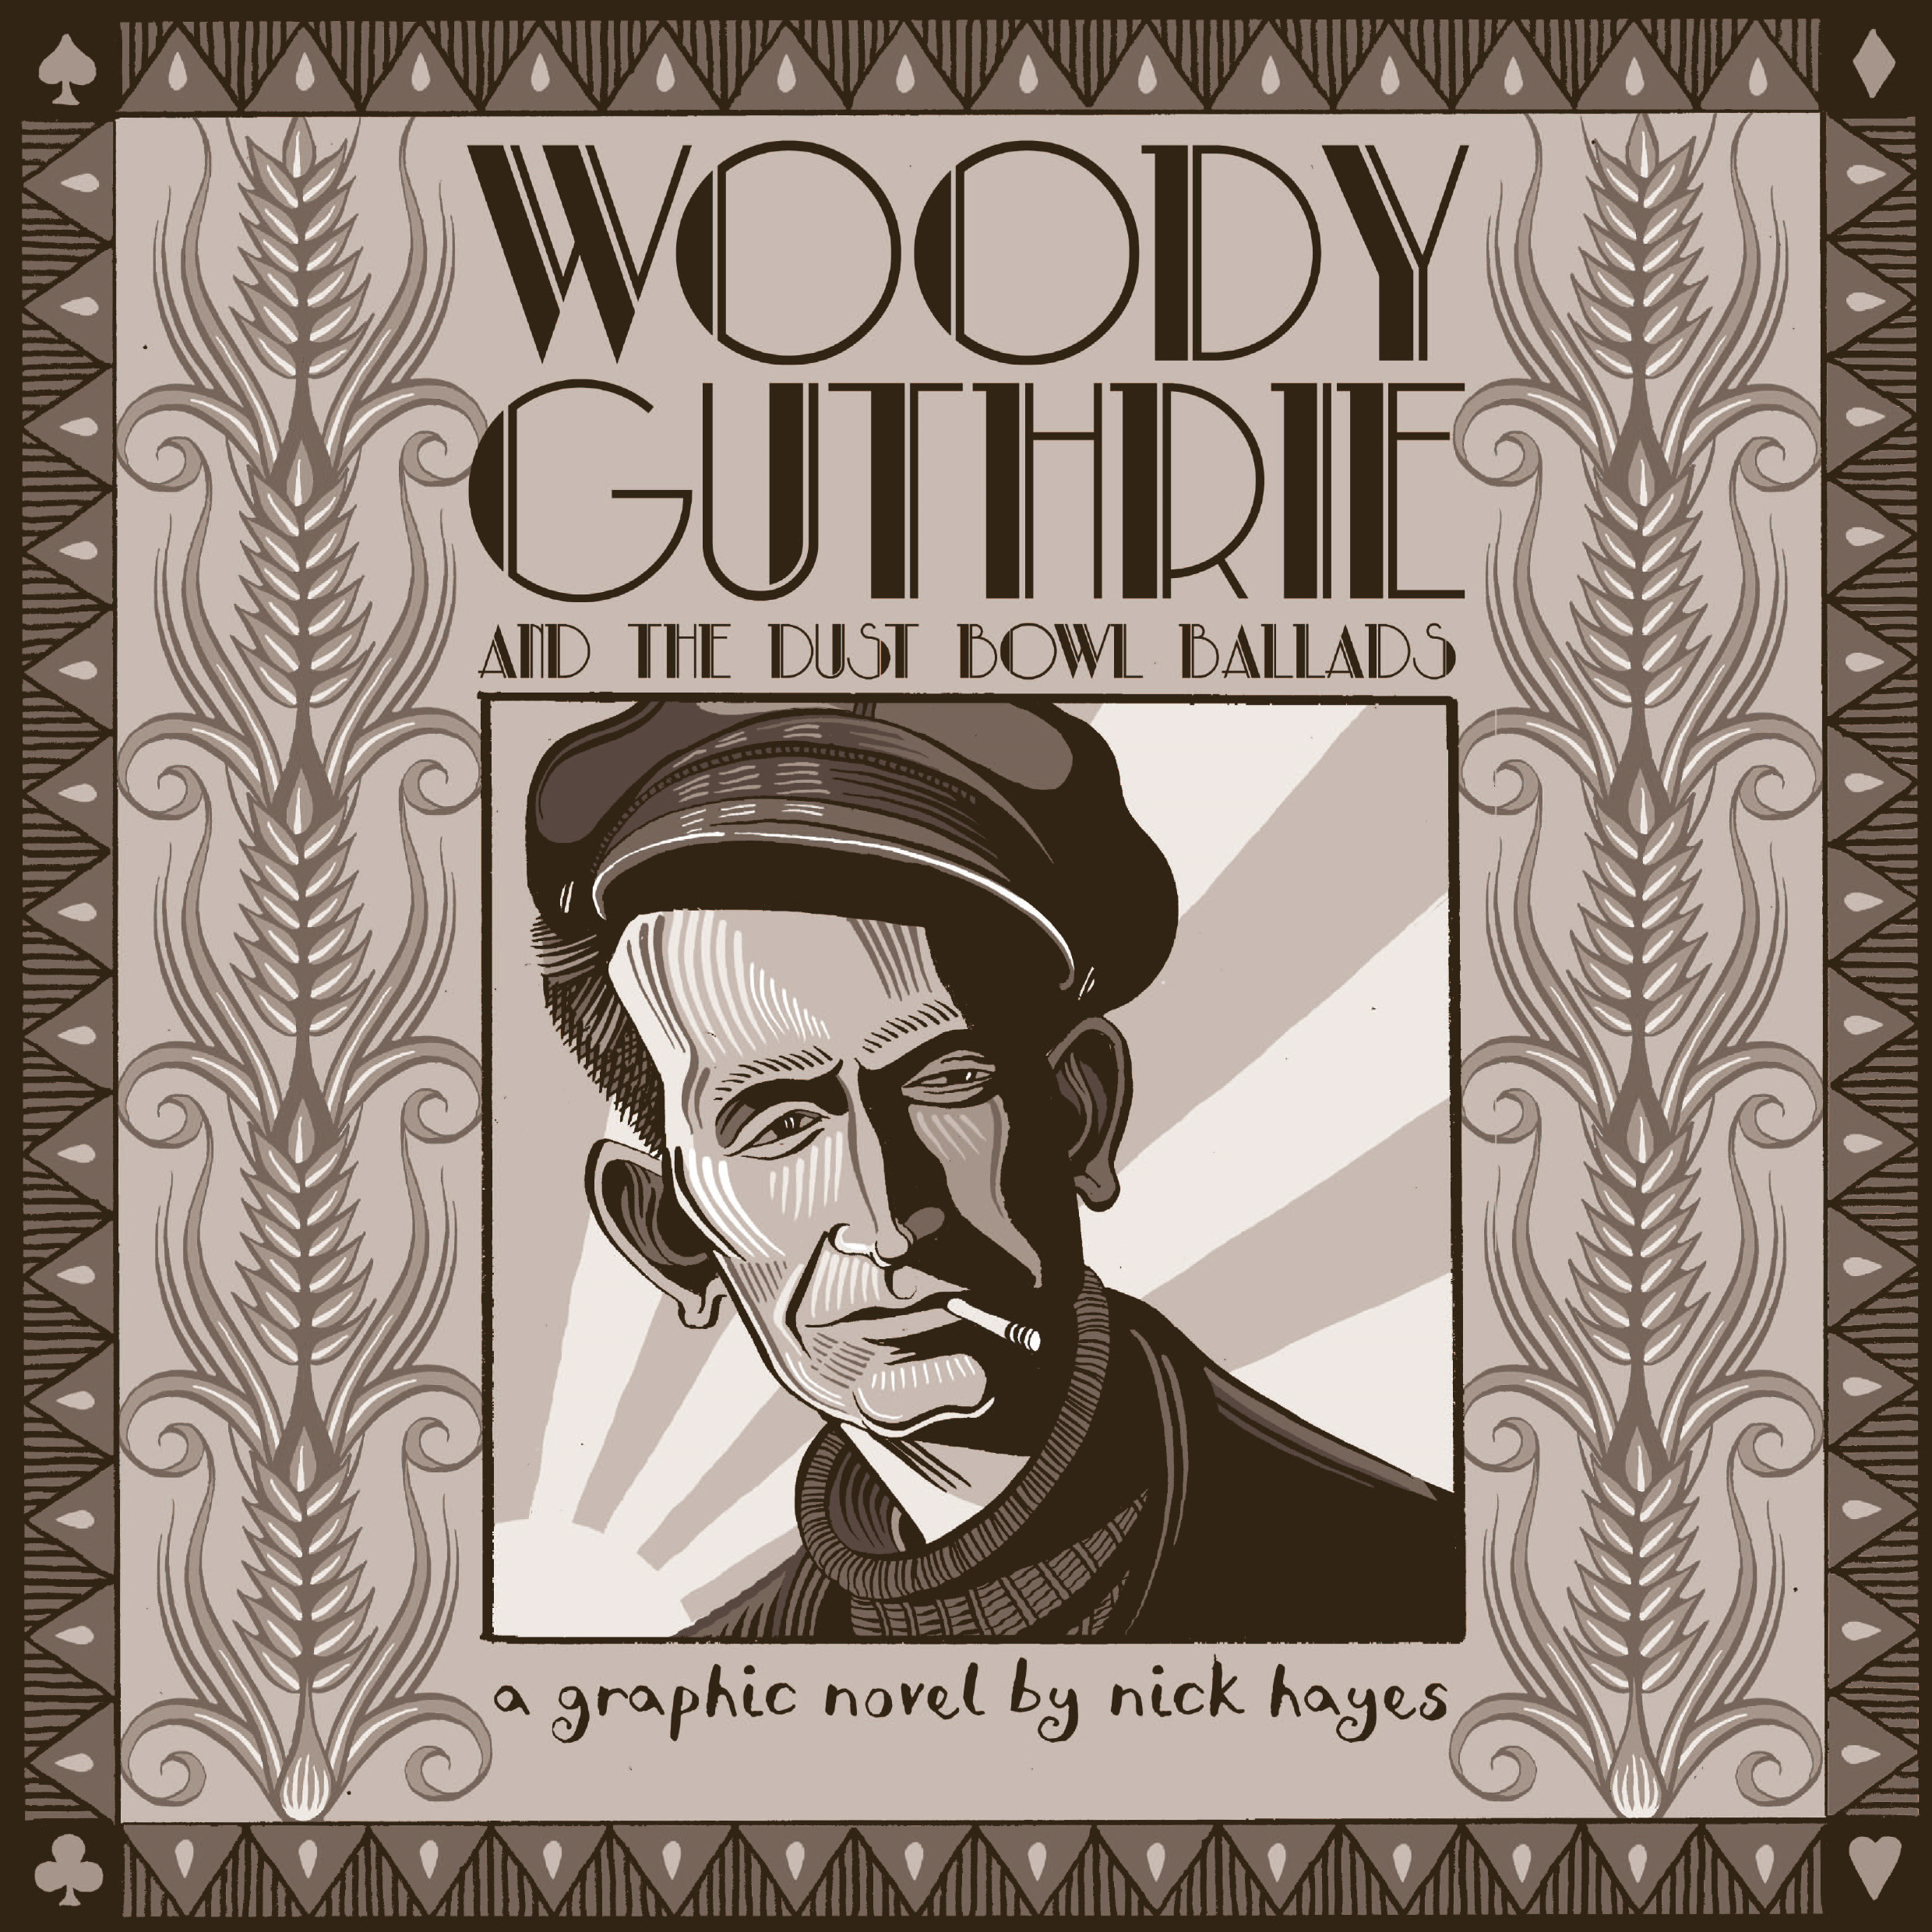 Woody Guthrie And the Dust Bowl Ballads